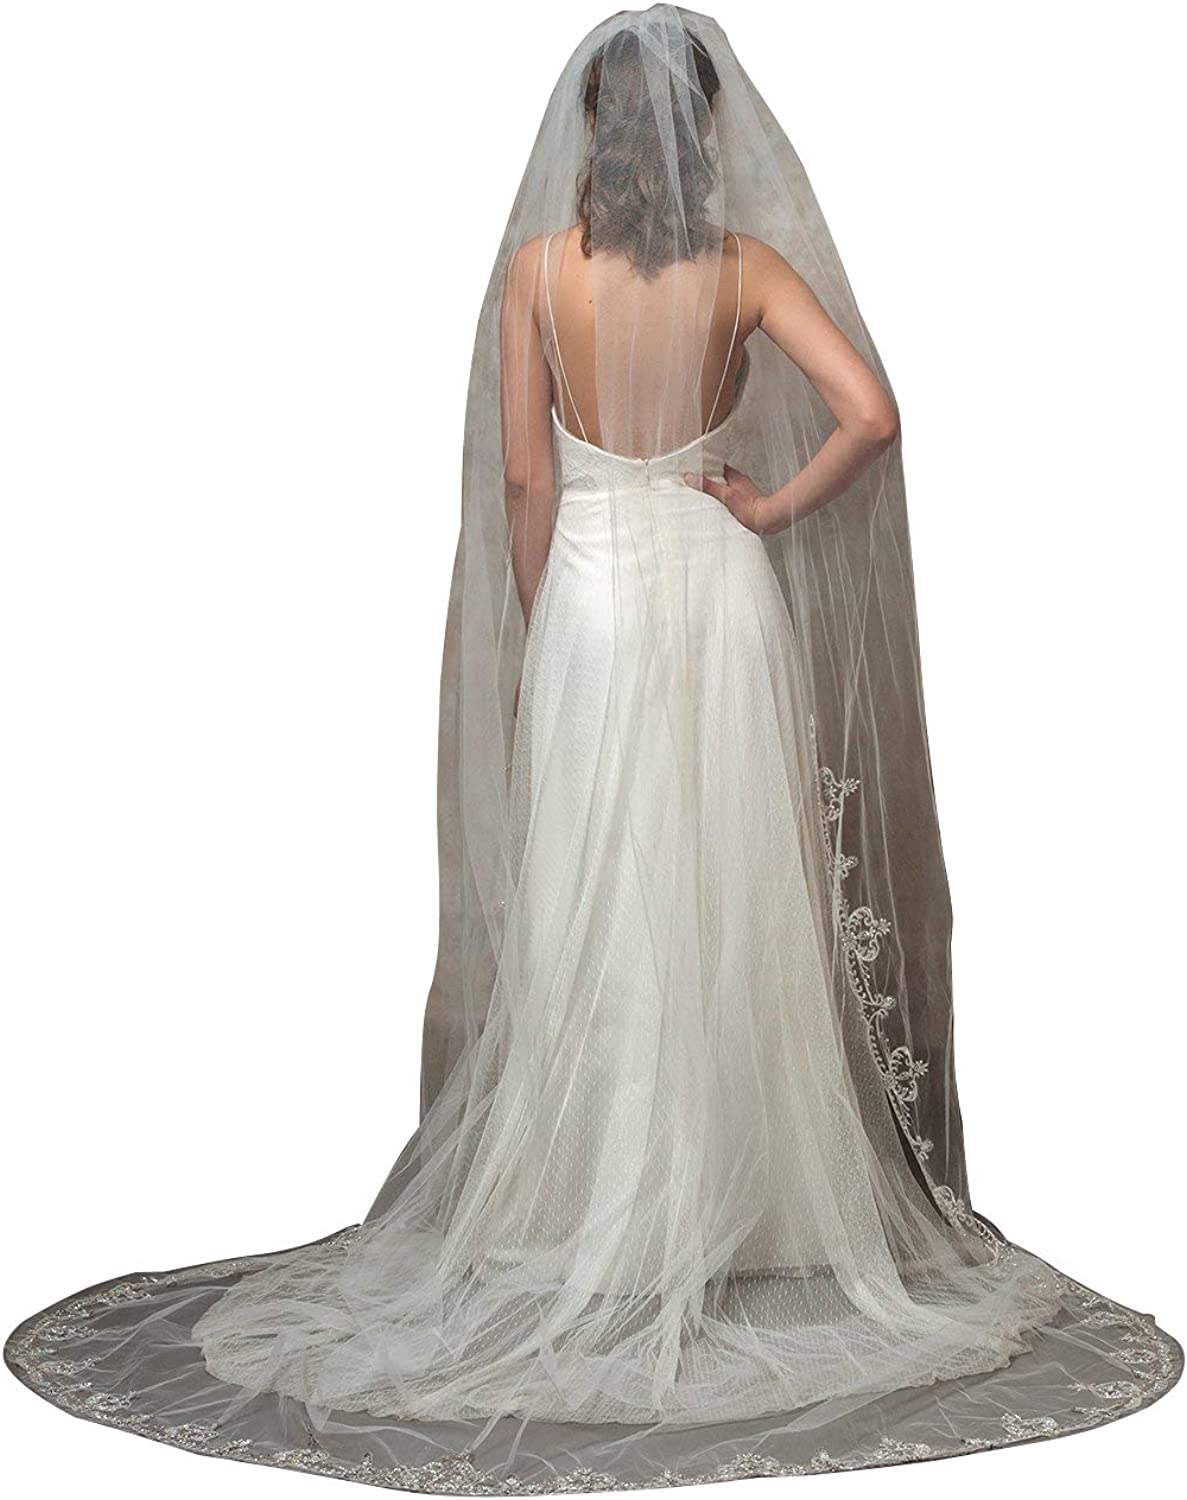 Fenghuavip Cathedral Wedding Veils Lace Appliques Crystal Edge for Bride with Comb